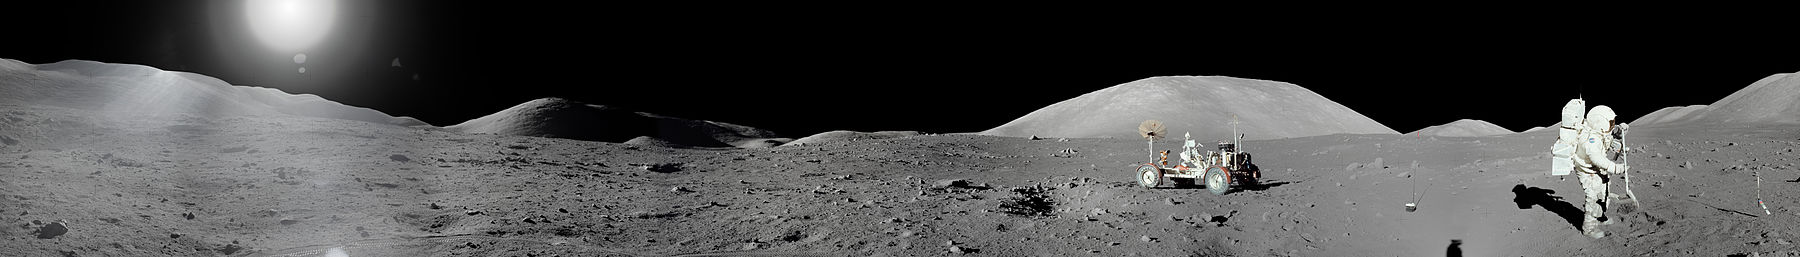 Apollo 17 Moon Panorama banner.jpg